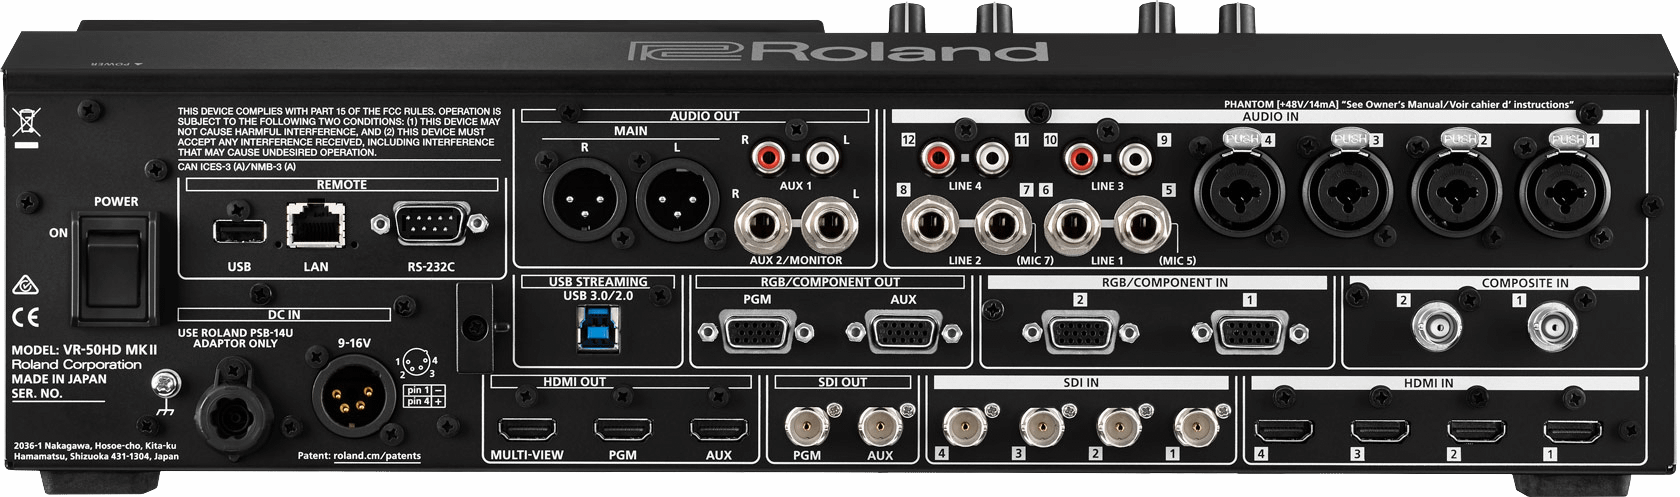 Roland VR-50HD MK II Rear Connections